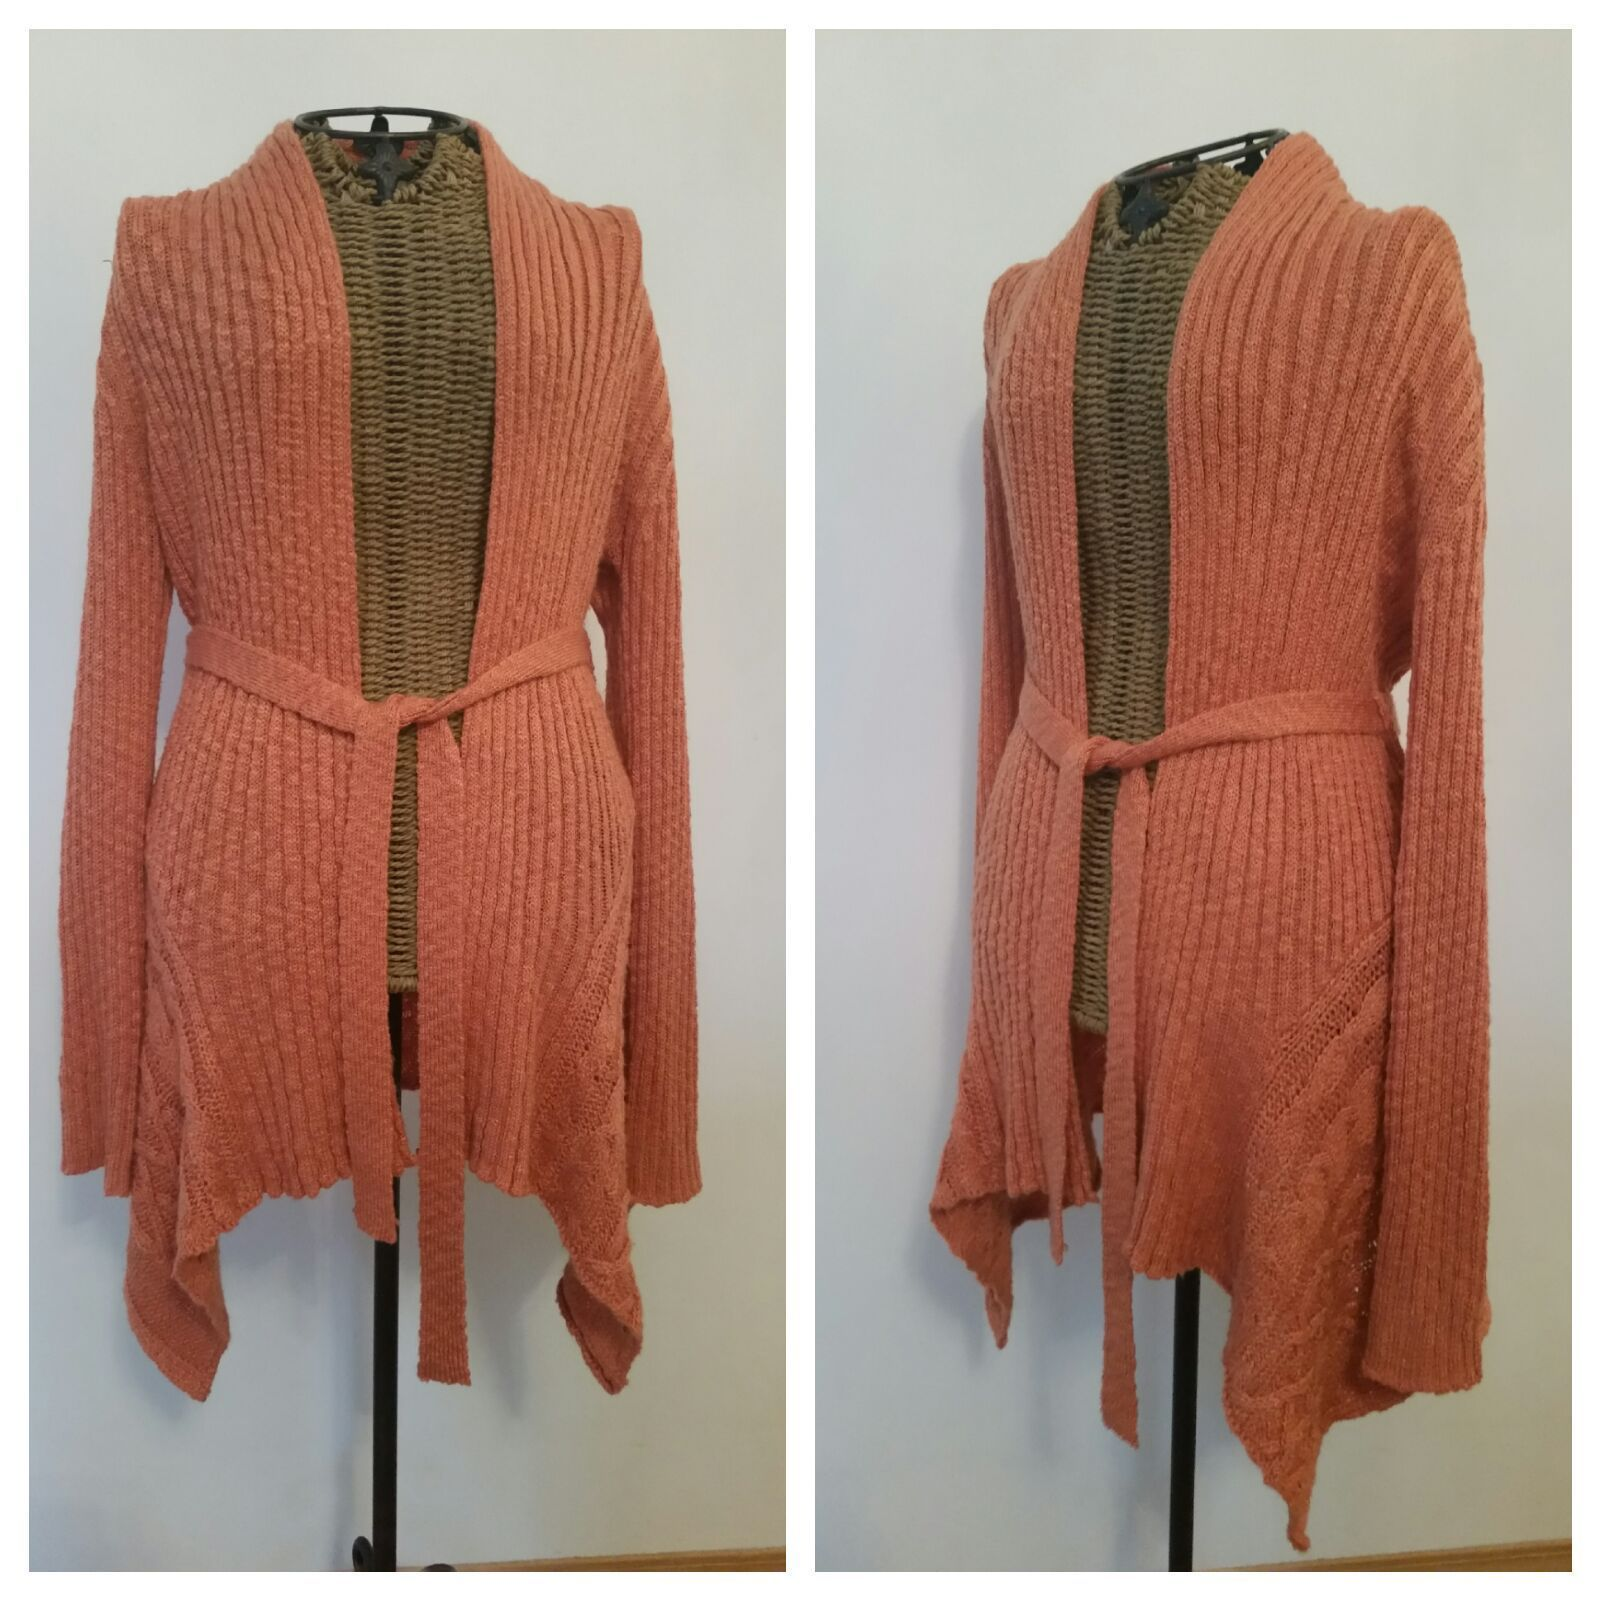 MYSTREE belted cardigan sweater - Mercari: BUY & SELL THINGS YOU LOVE